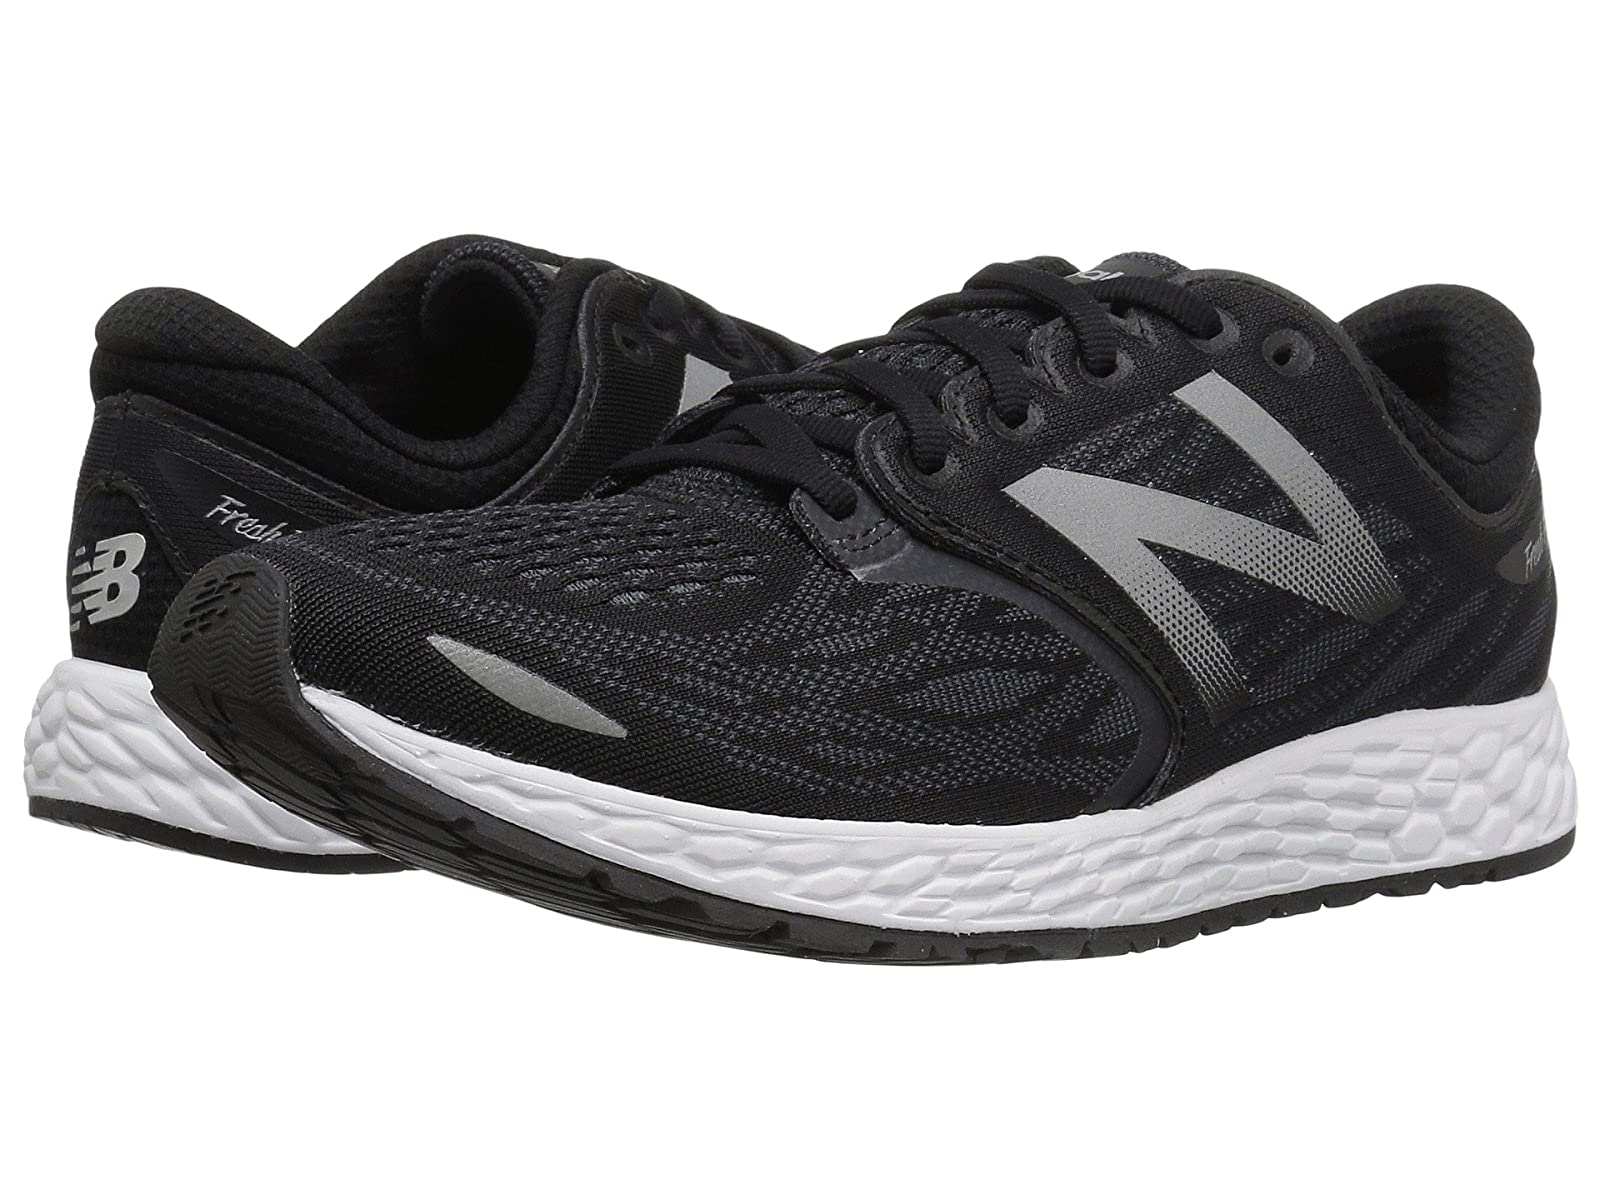 New Balance Fresh Foam Zante V3Cheap and distinctive eye-catching shoes